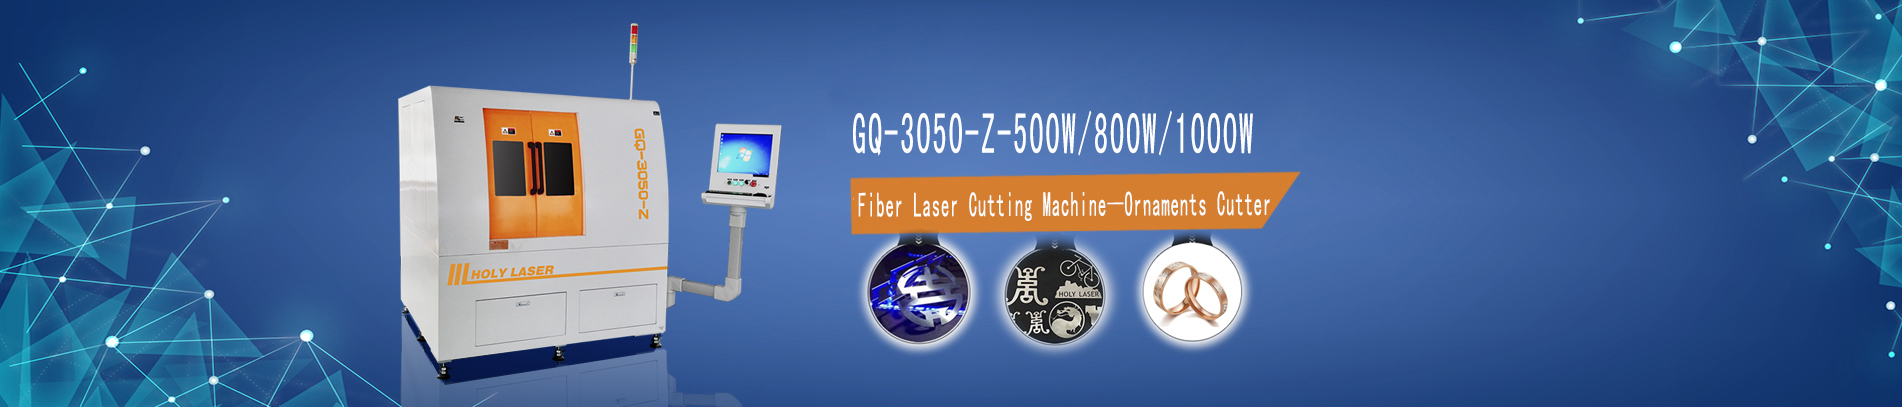 Zhe jiang Holy Laser Technology Co.LTD Main Image